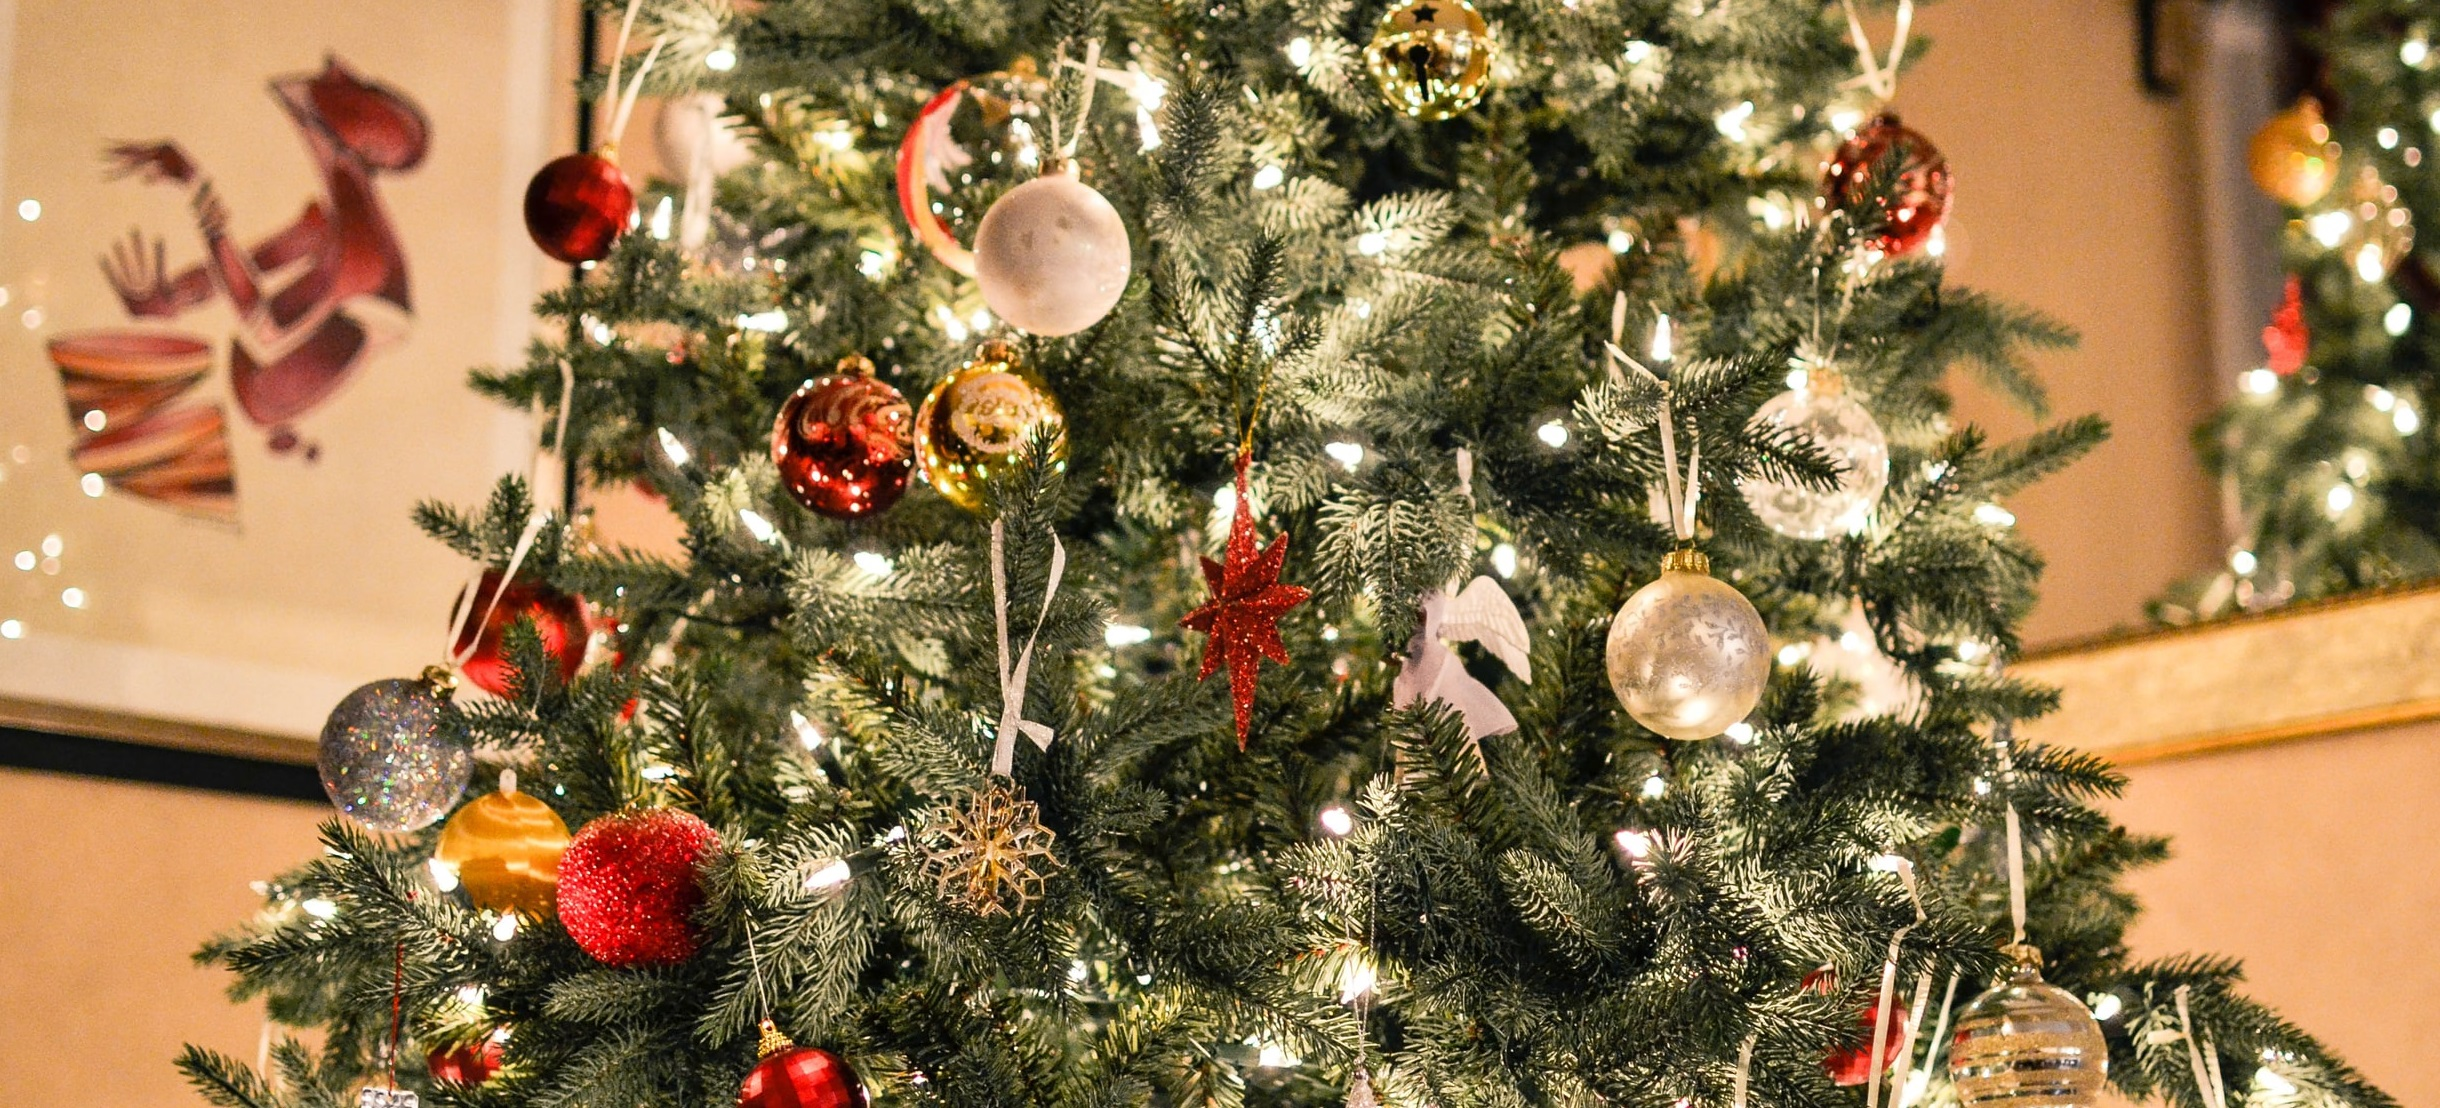 Best Metallic Christmas Tree Decorations For Gleaming Christmas Of 2021